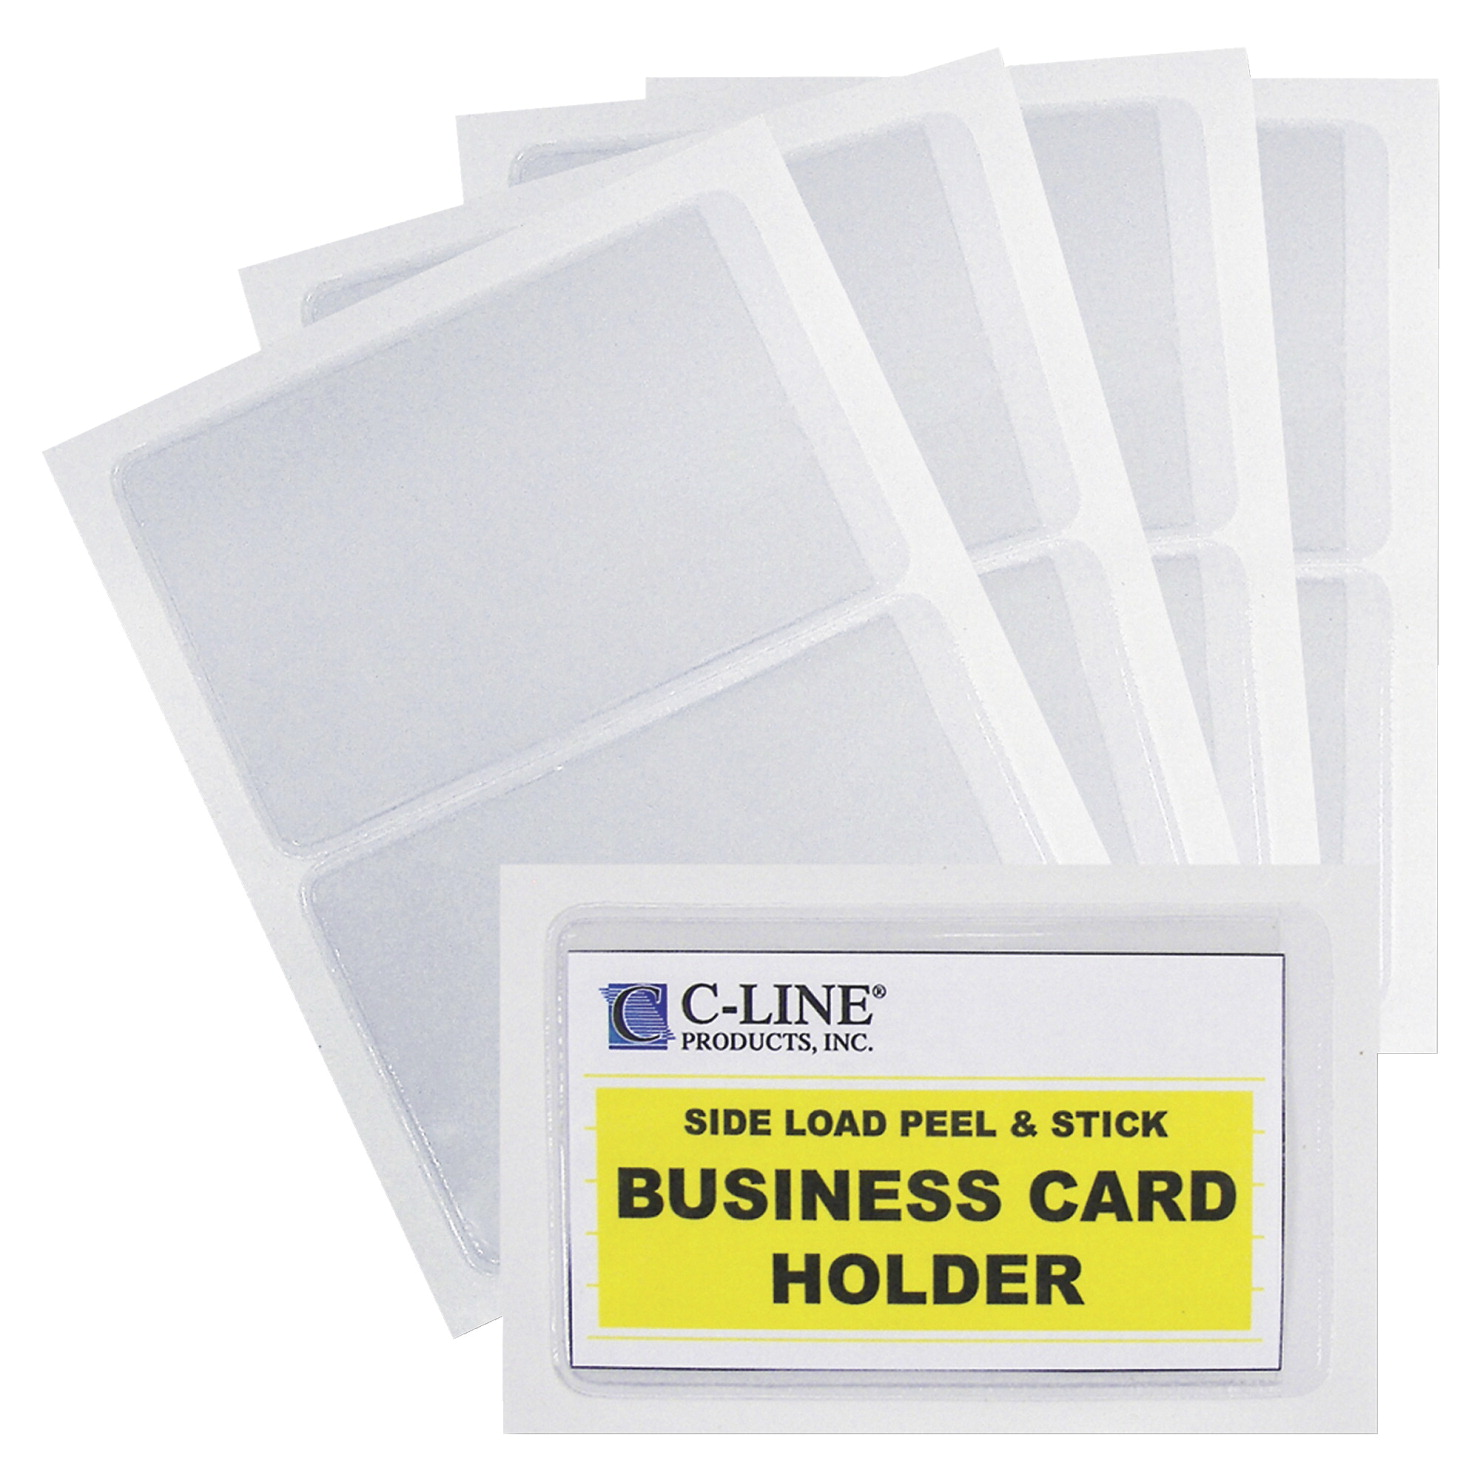 Transparent business cards products ultimate business cards a business card is the only means for a person to contact you after the initial contact transparent business cards are magicingreecefo Choice Image